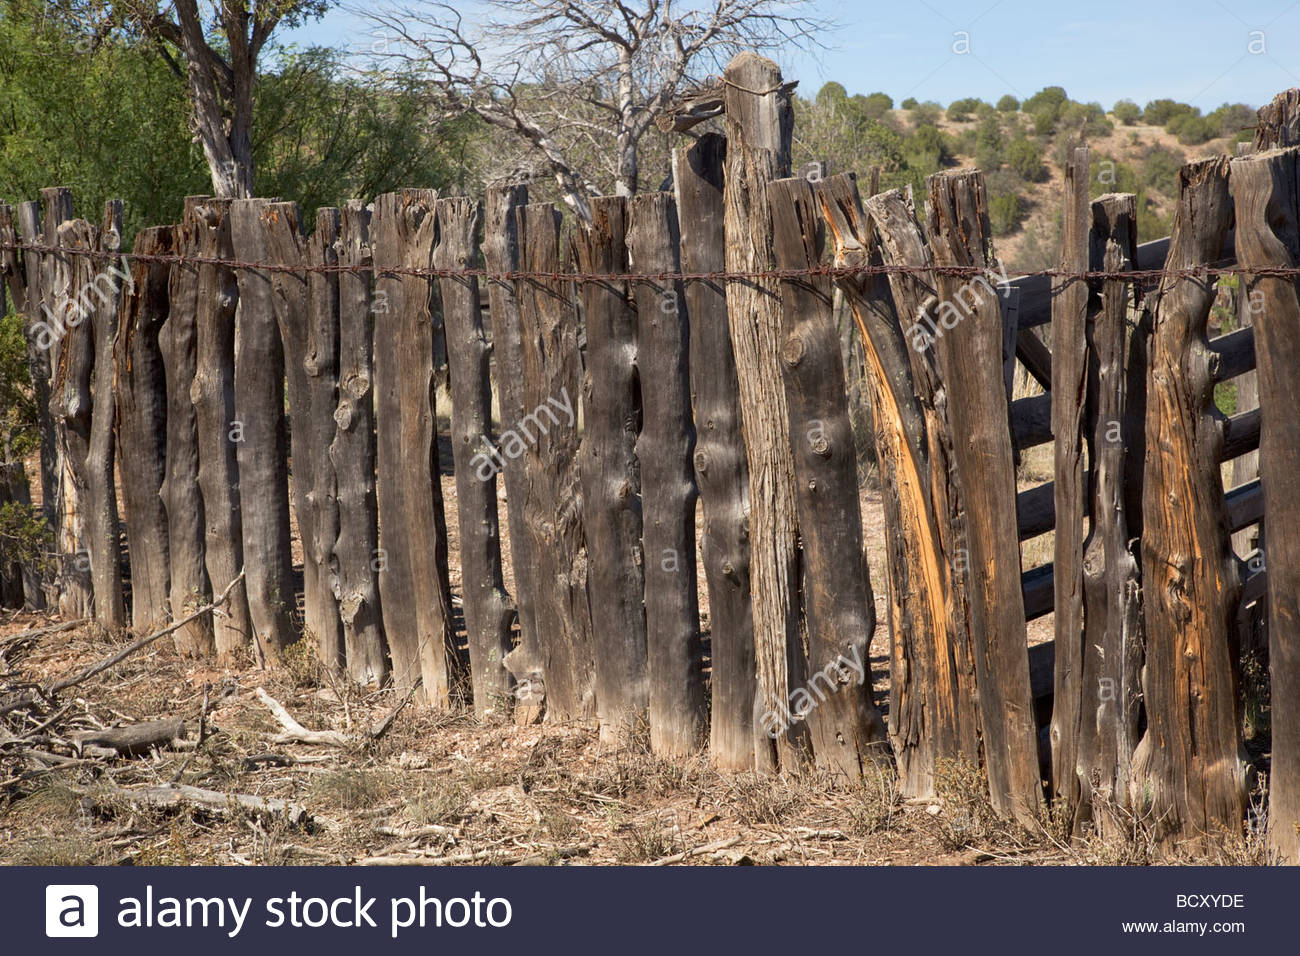 Old wood fence posts stock photos old wood fence posts stock old wooden weathered corral fence posts new mexico stock image baanklon Image collections